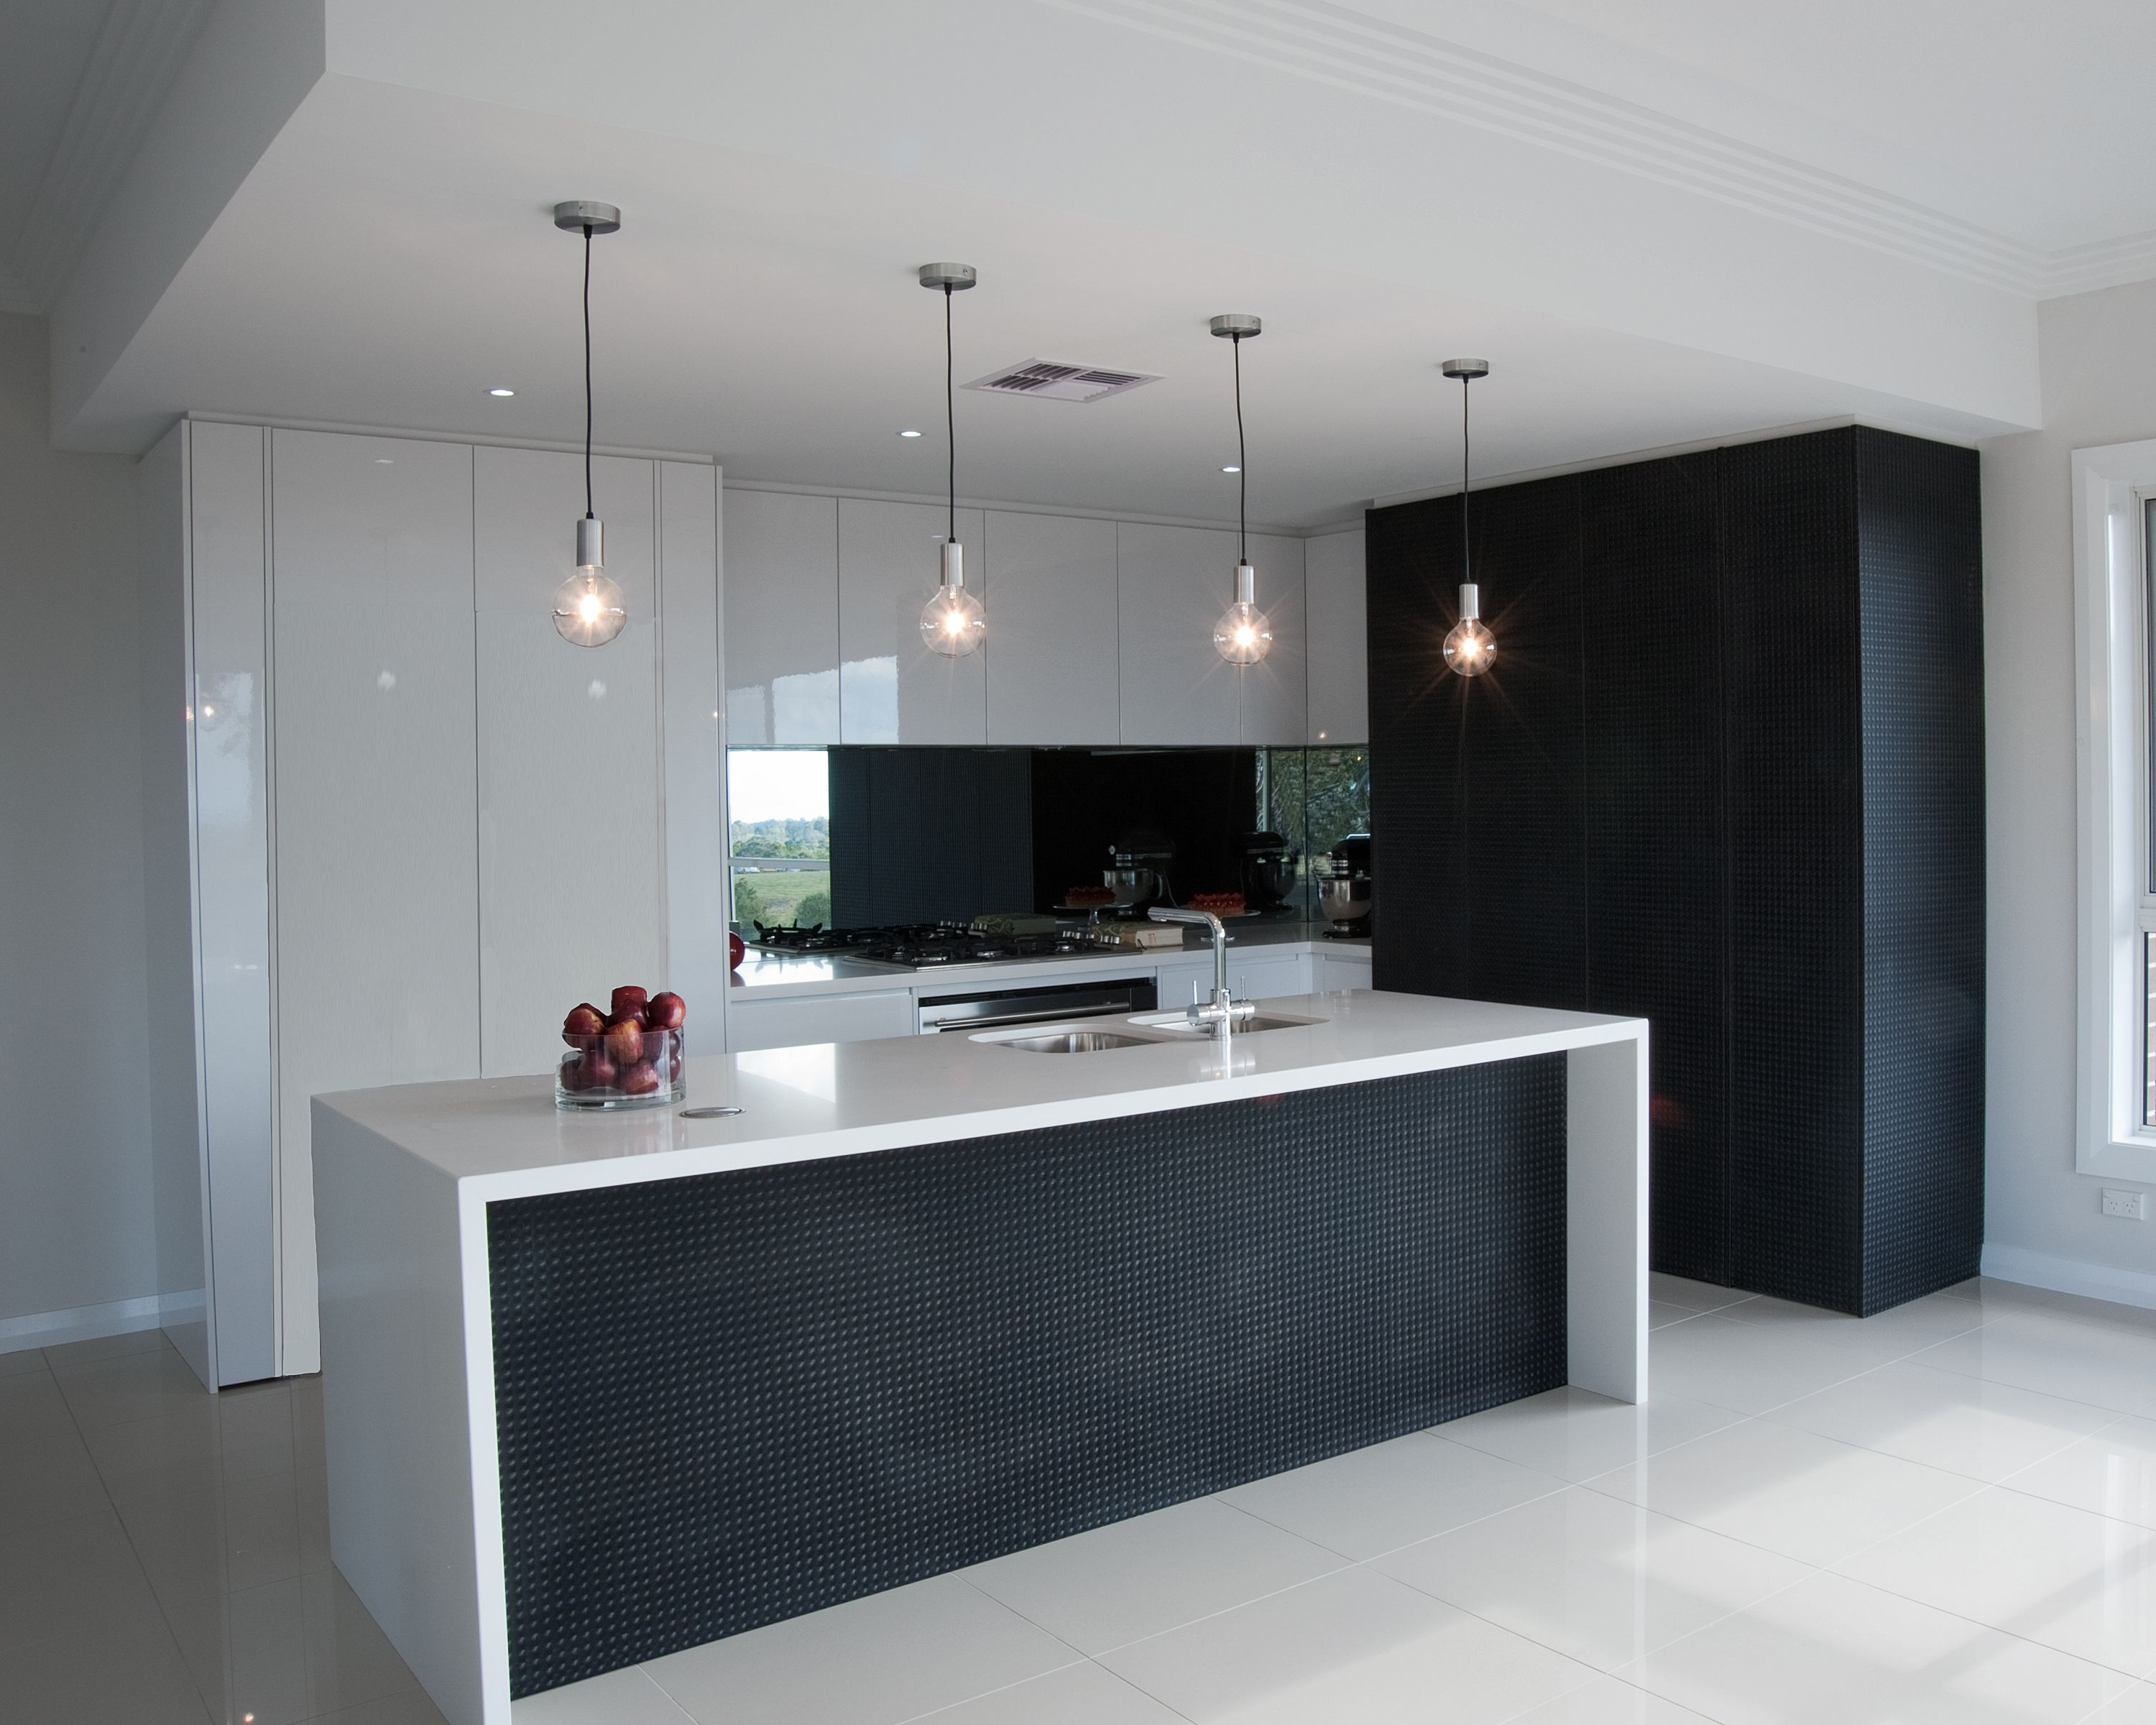 Camelothomes the oaks project modern kitchen design for Black kitchen design